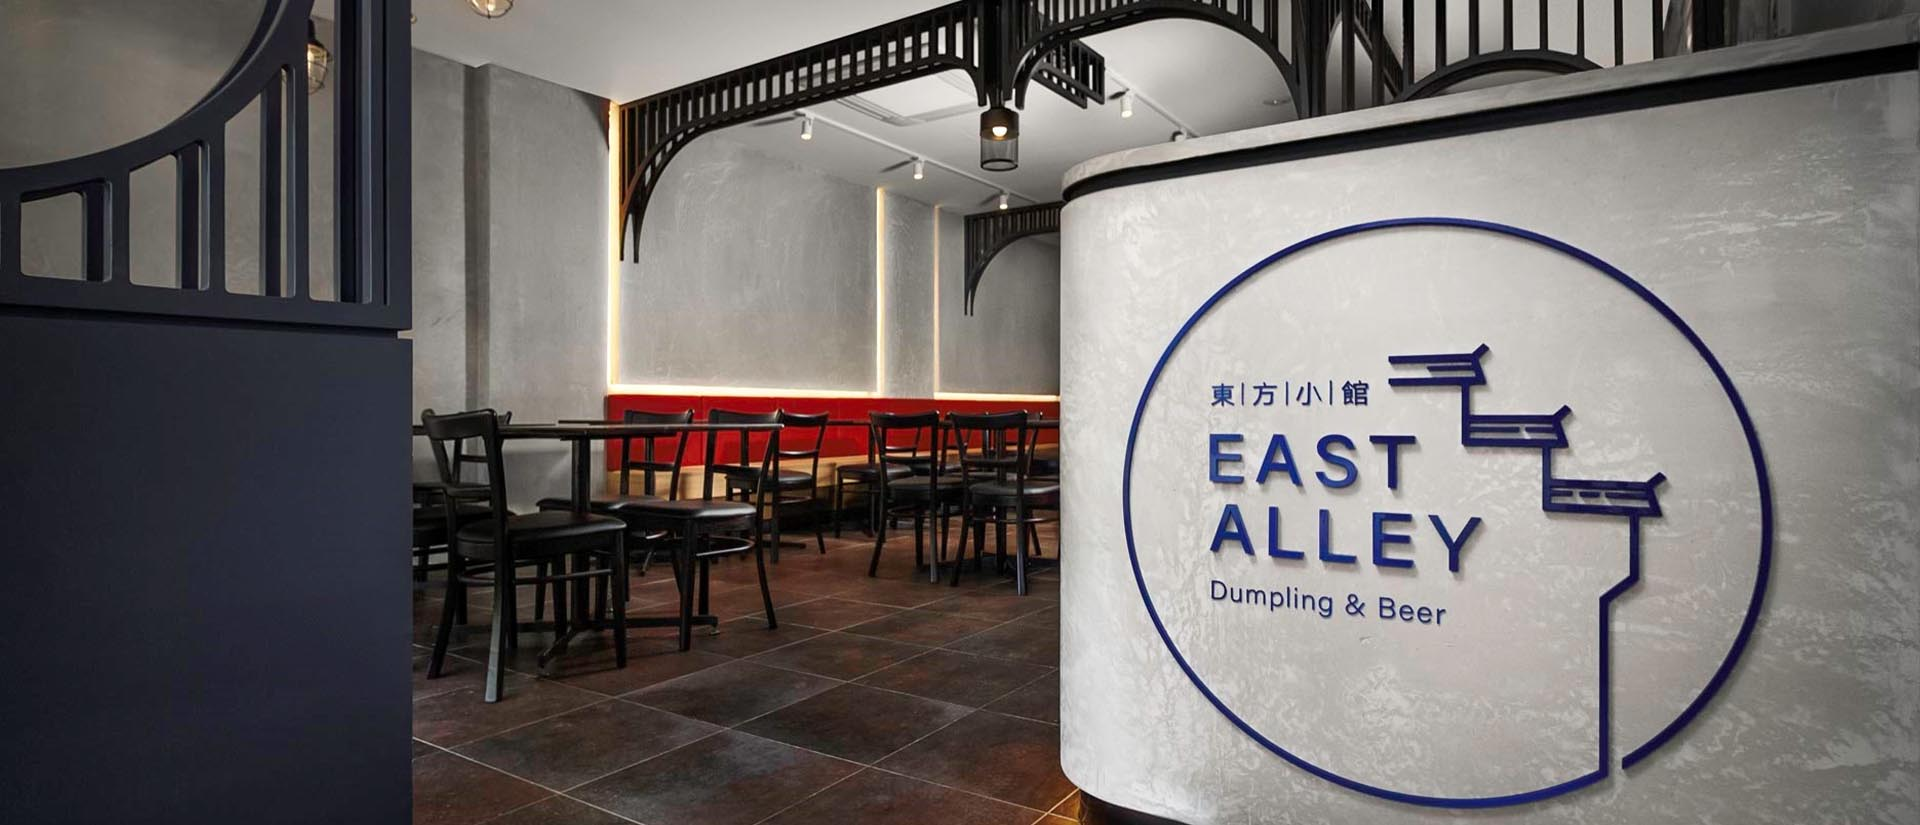 Projects-Restaurant_East Alley-1